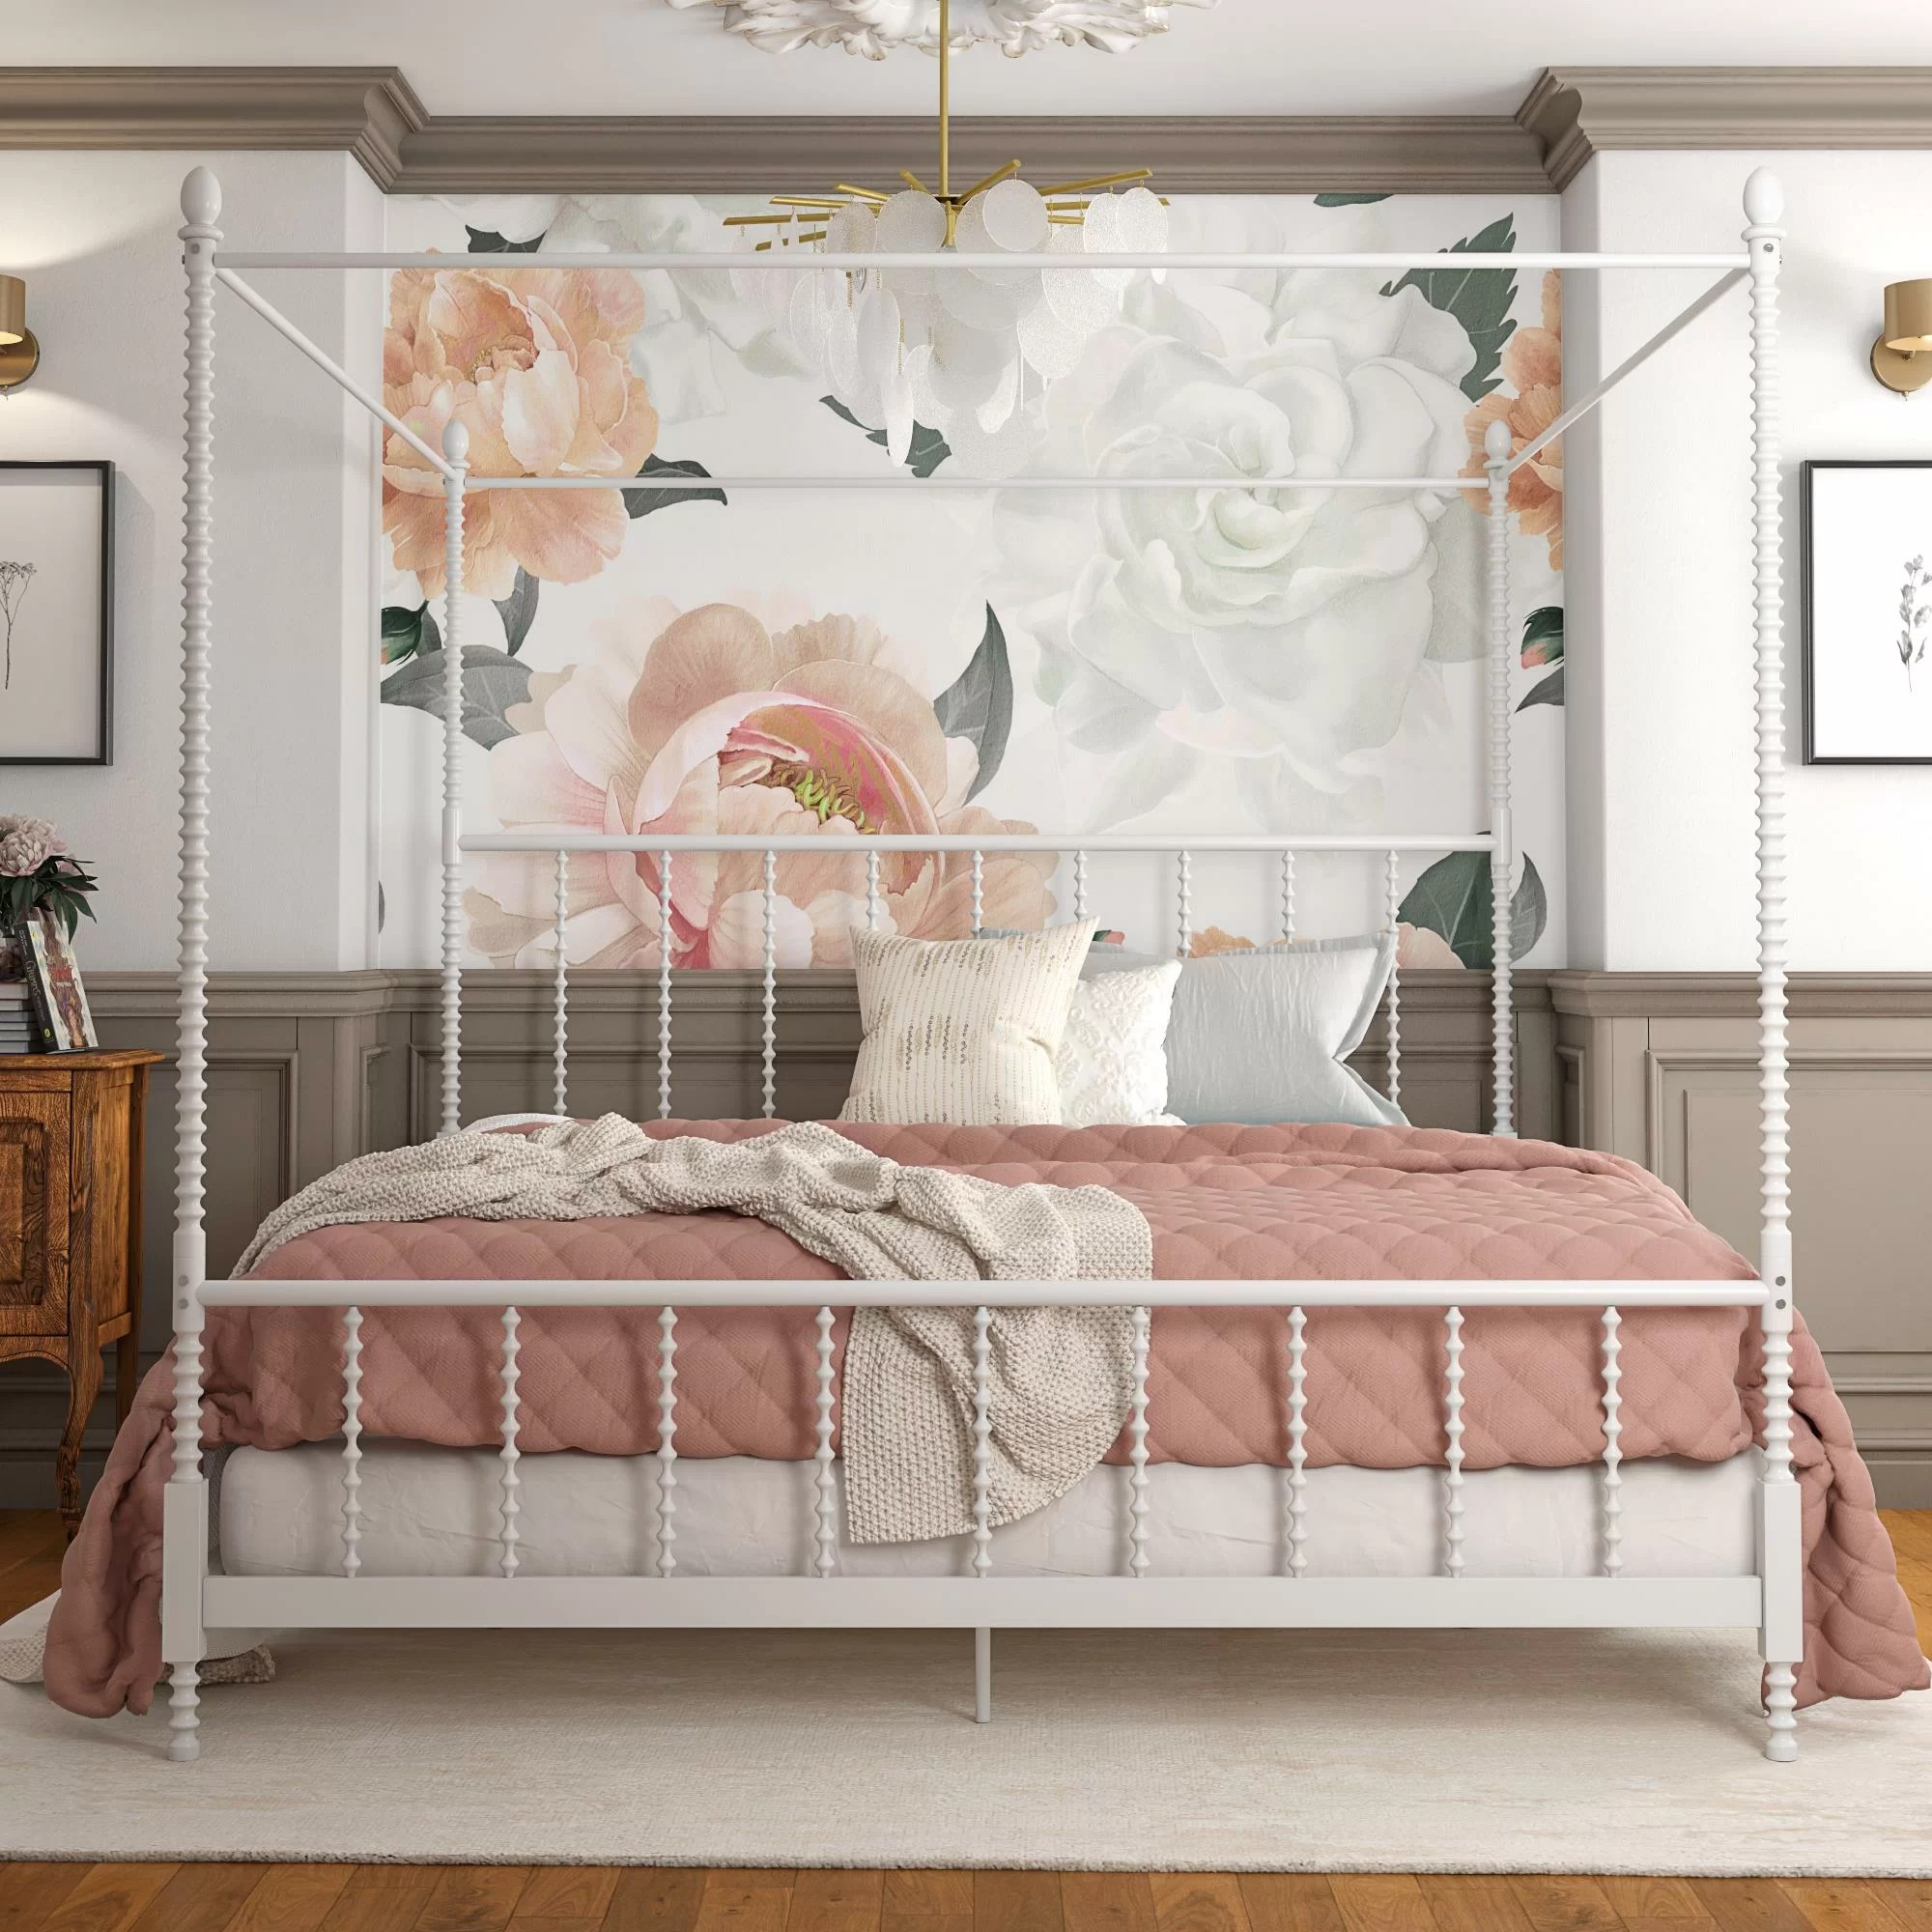 - Aesthetic Bedroom Canopy Bed - Canopy Ideas 2020